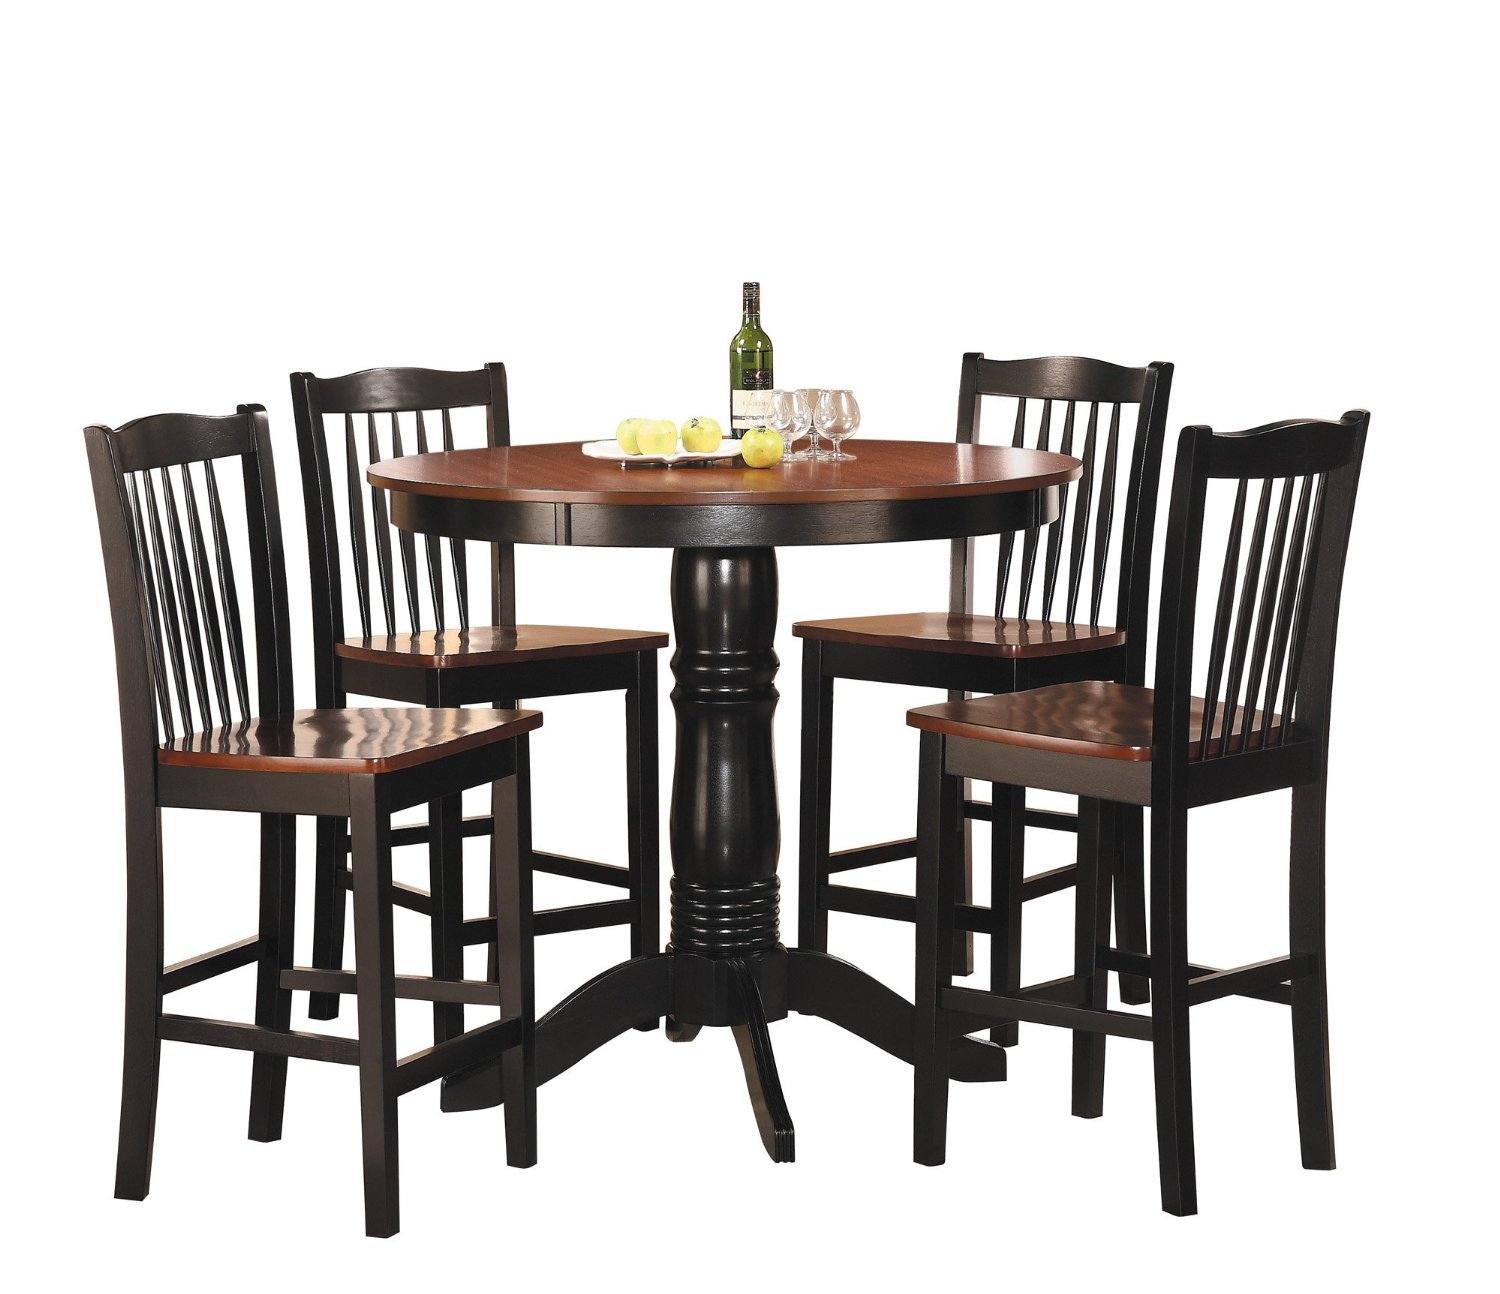 Top 5 kitchen table sets under 500 boldlist for 5 piece dining set